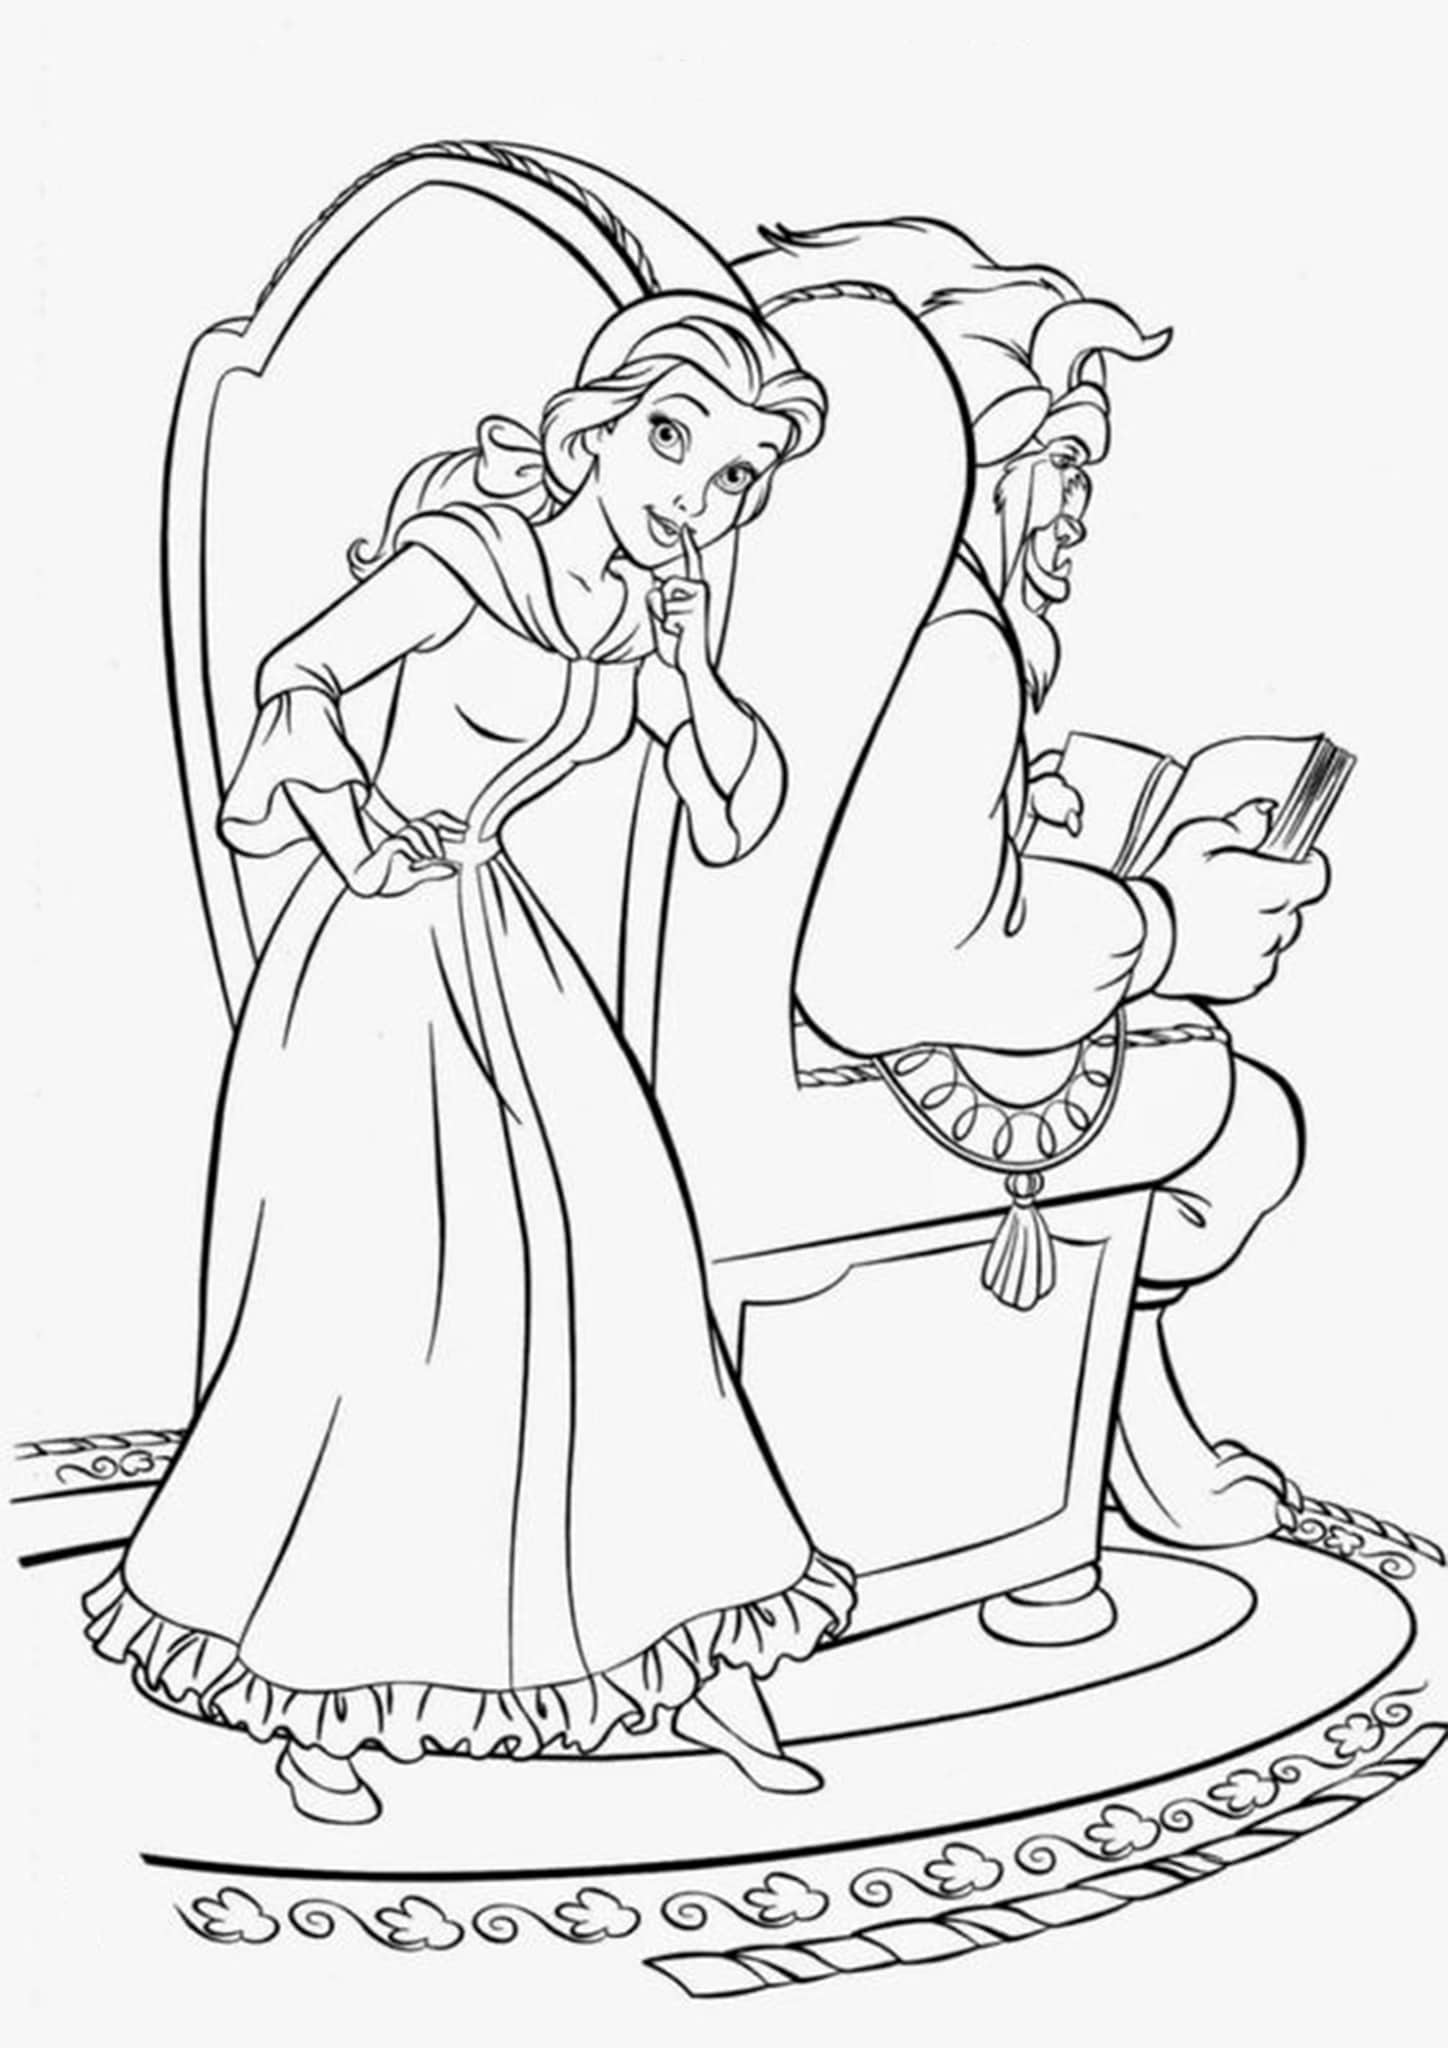 beauty and the beast colouring pages beauty and the beast coloring book coloring home beauty the beast and pages colouring